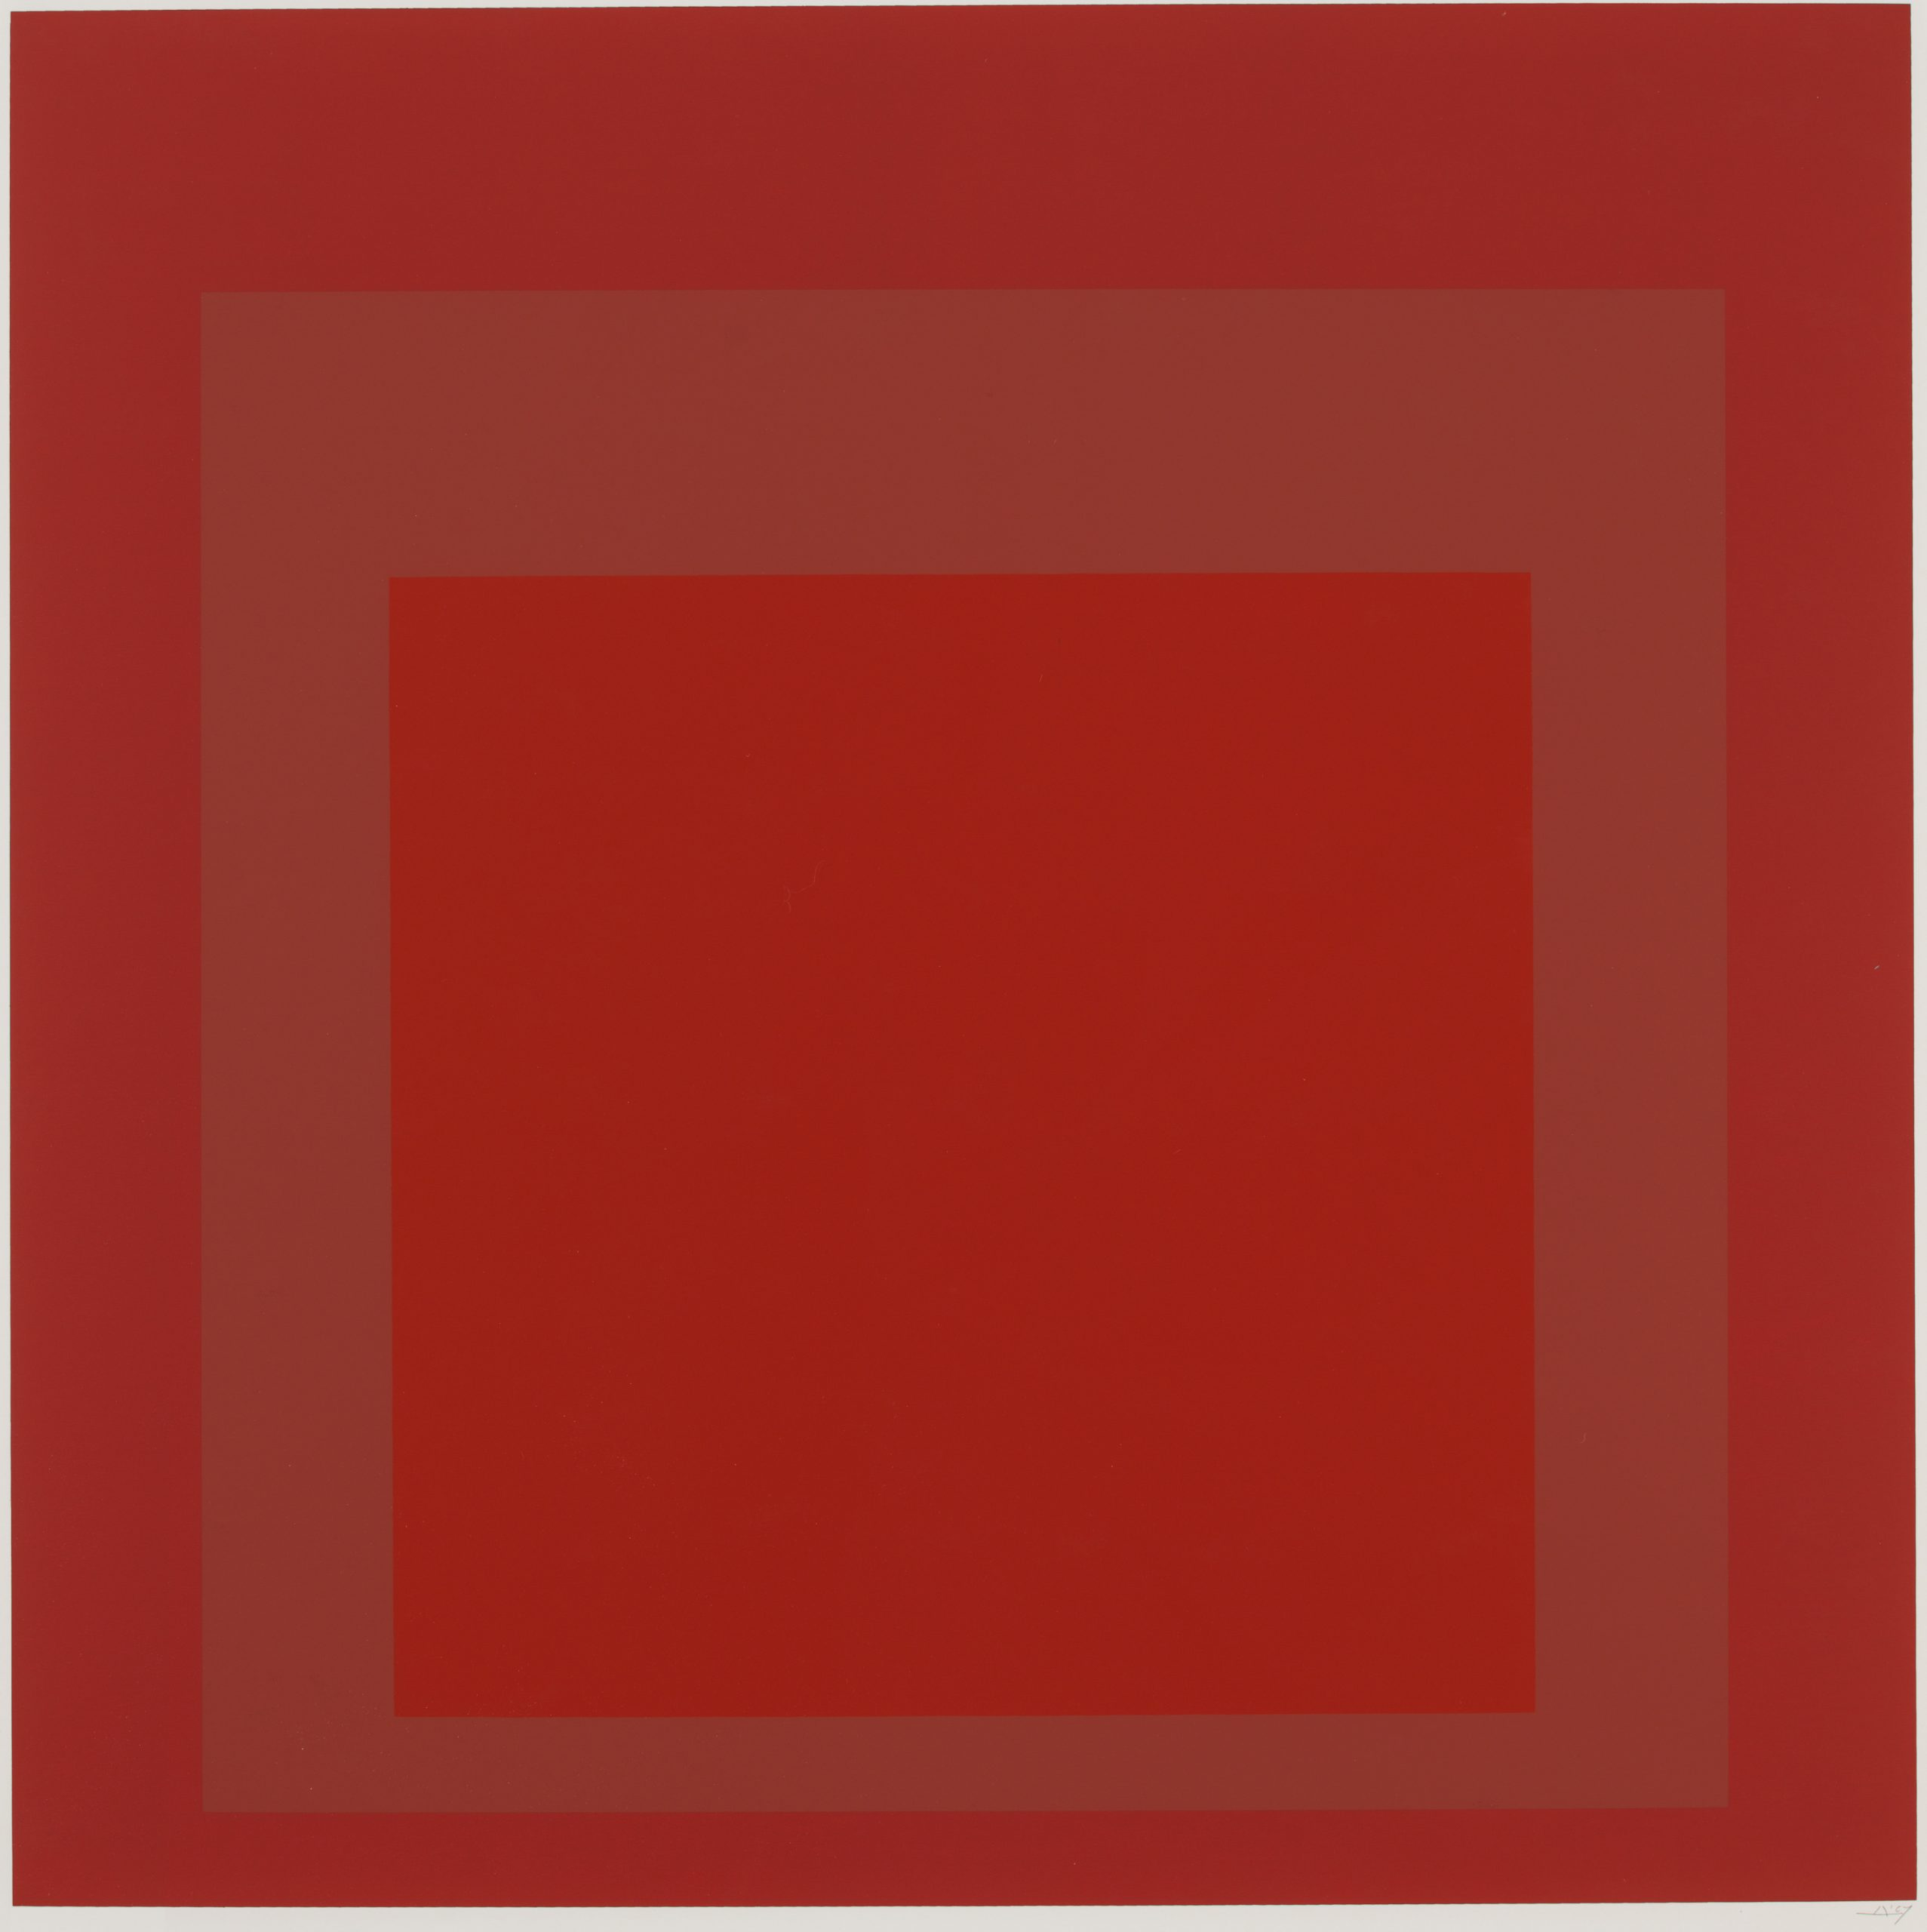 Sp V by Josef Albers